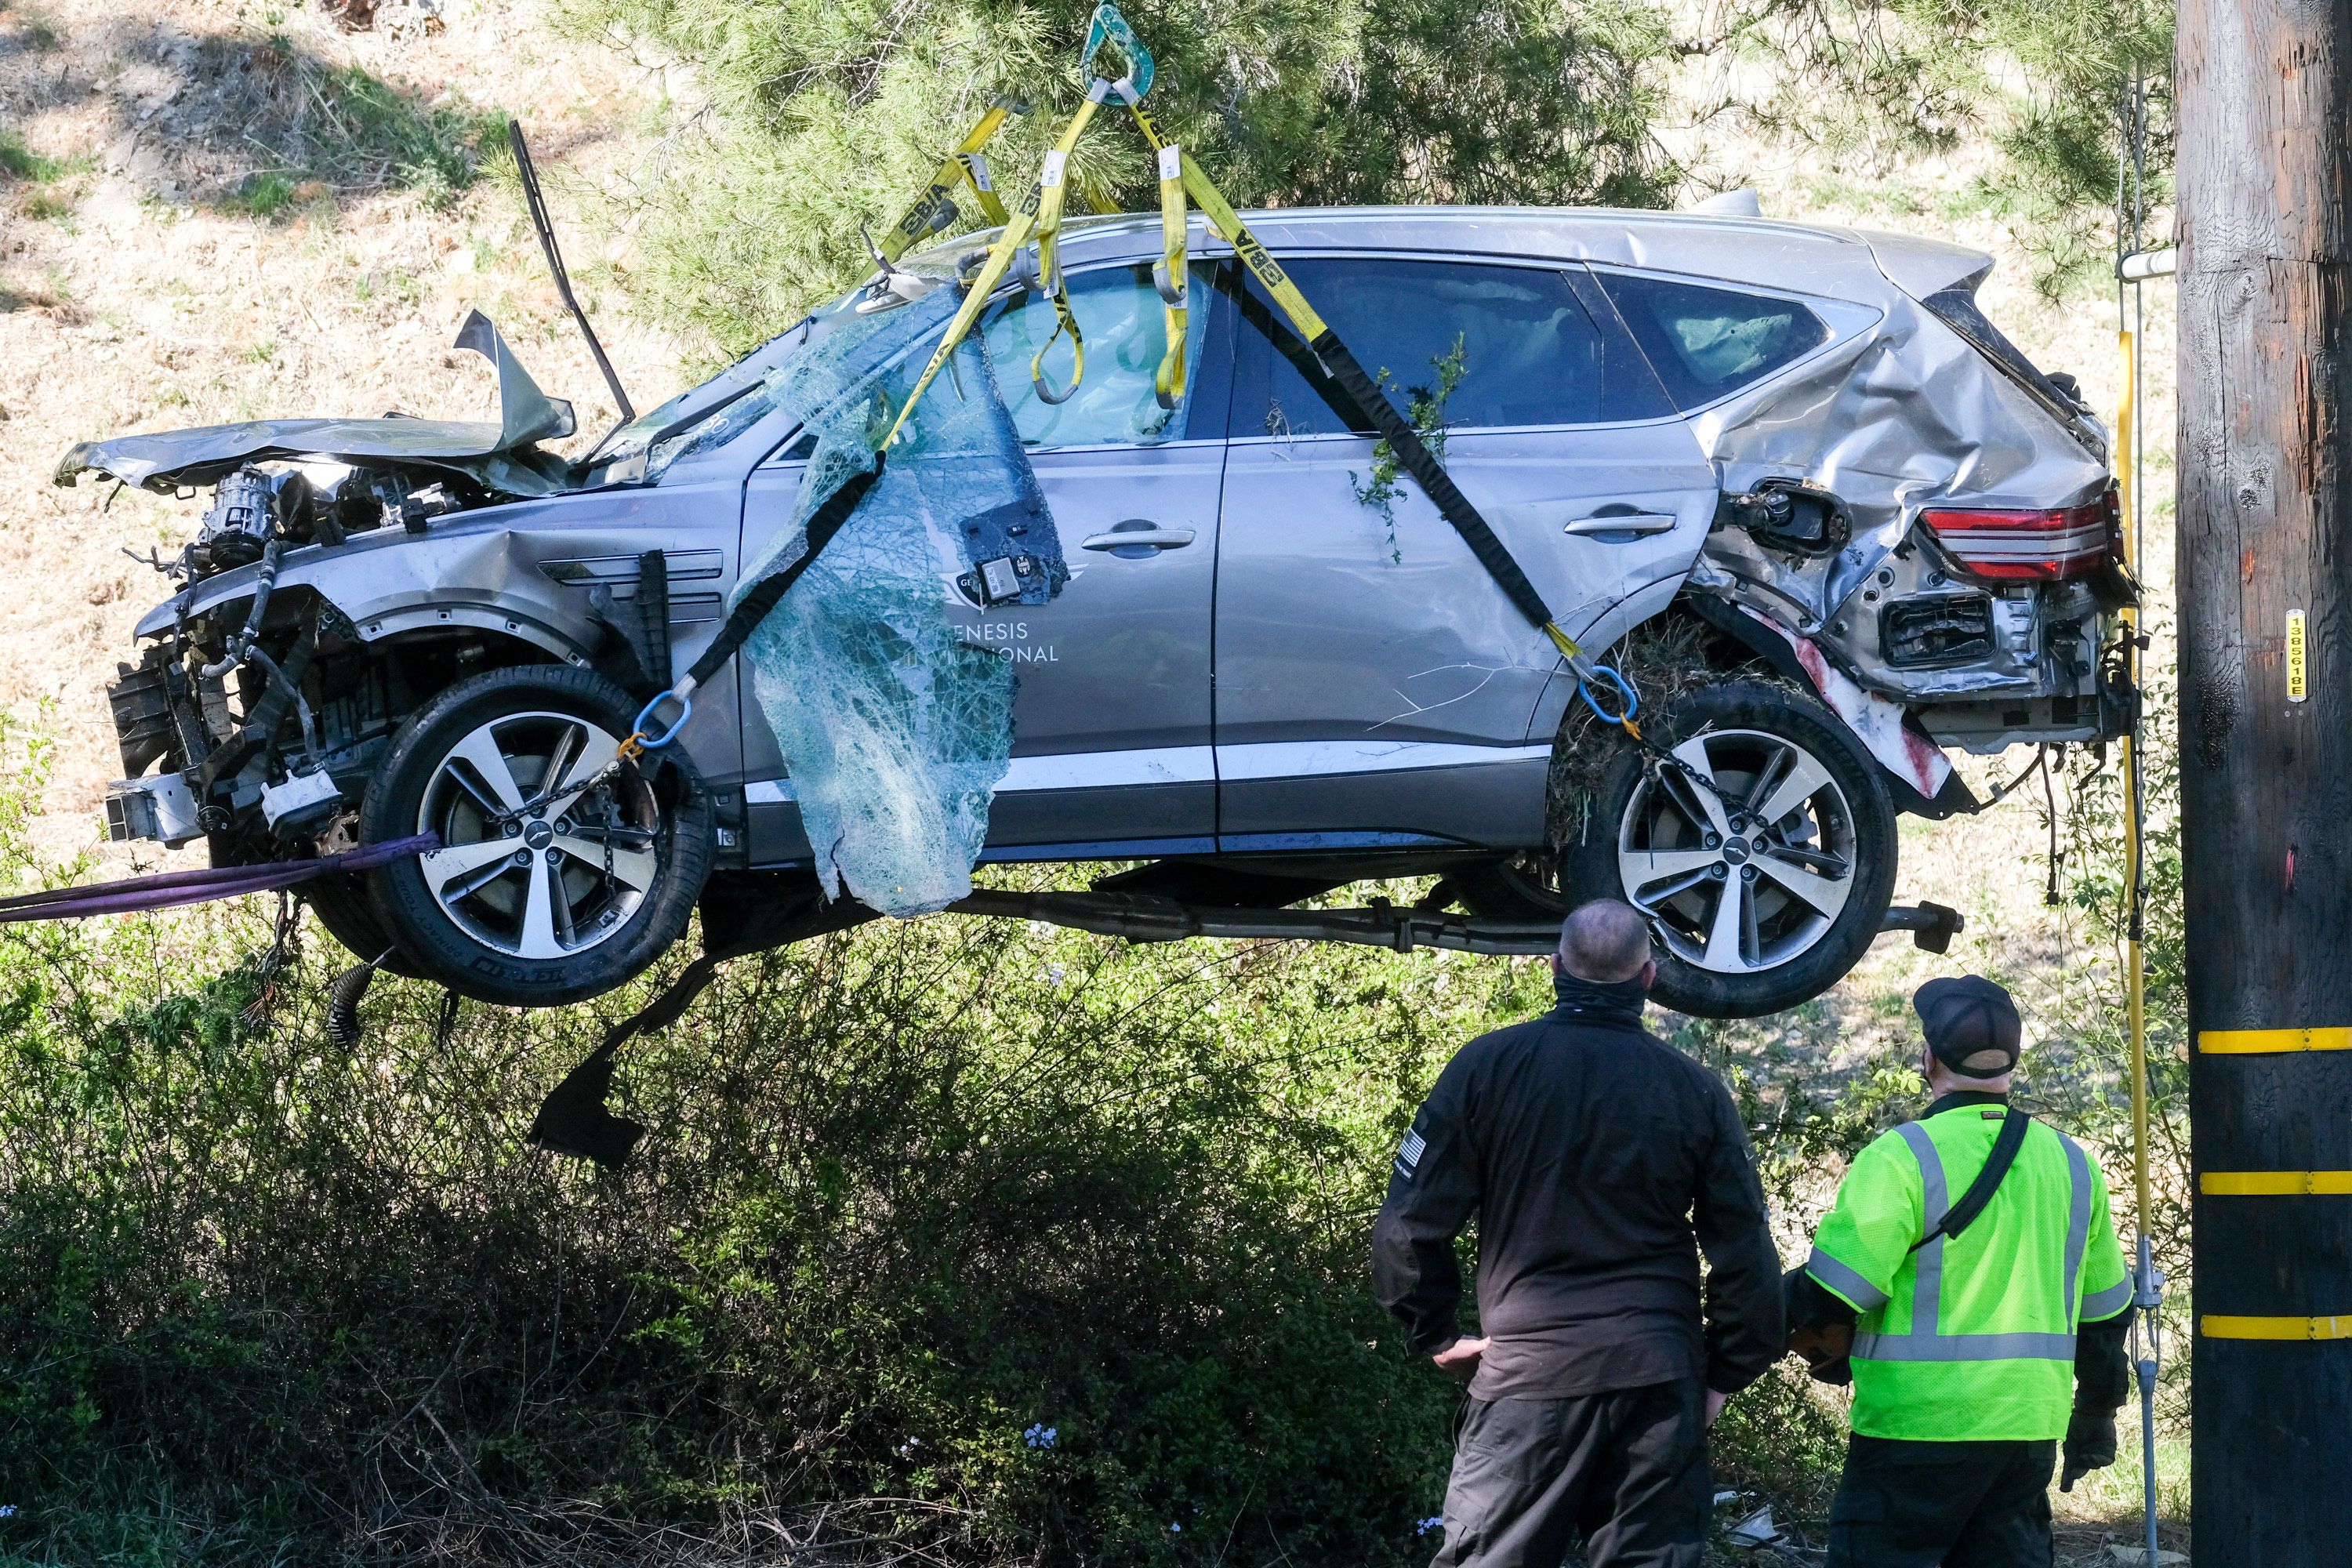 Tiger Woods' SUV crash was caused by speed and an inability to negotiate a curve, Los Angeles County sheriff says